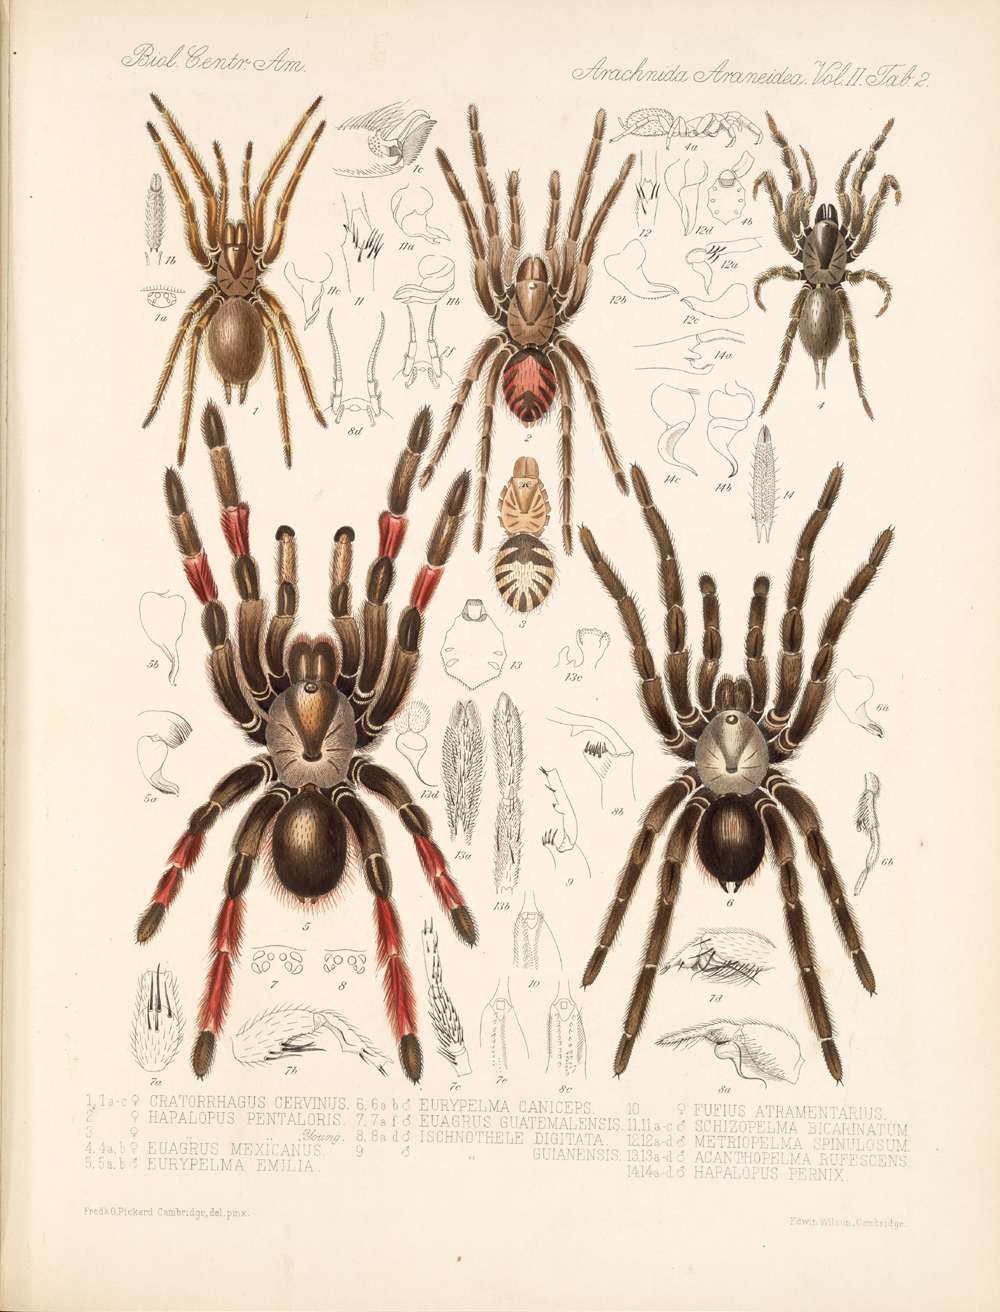 Spiders and Scorpions,  Image number:bca_08_00_00_628